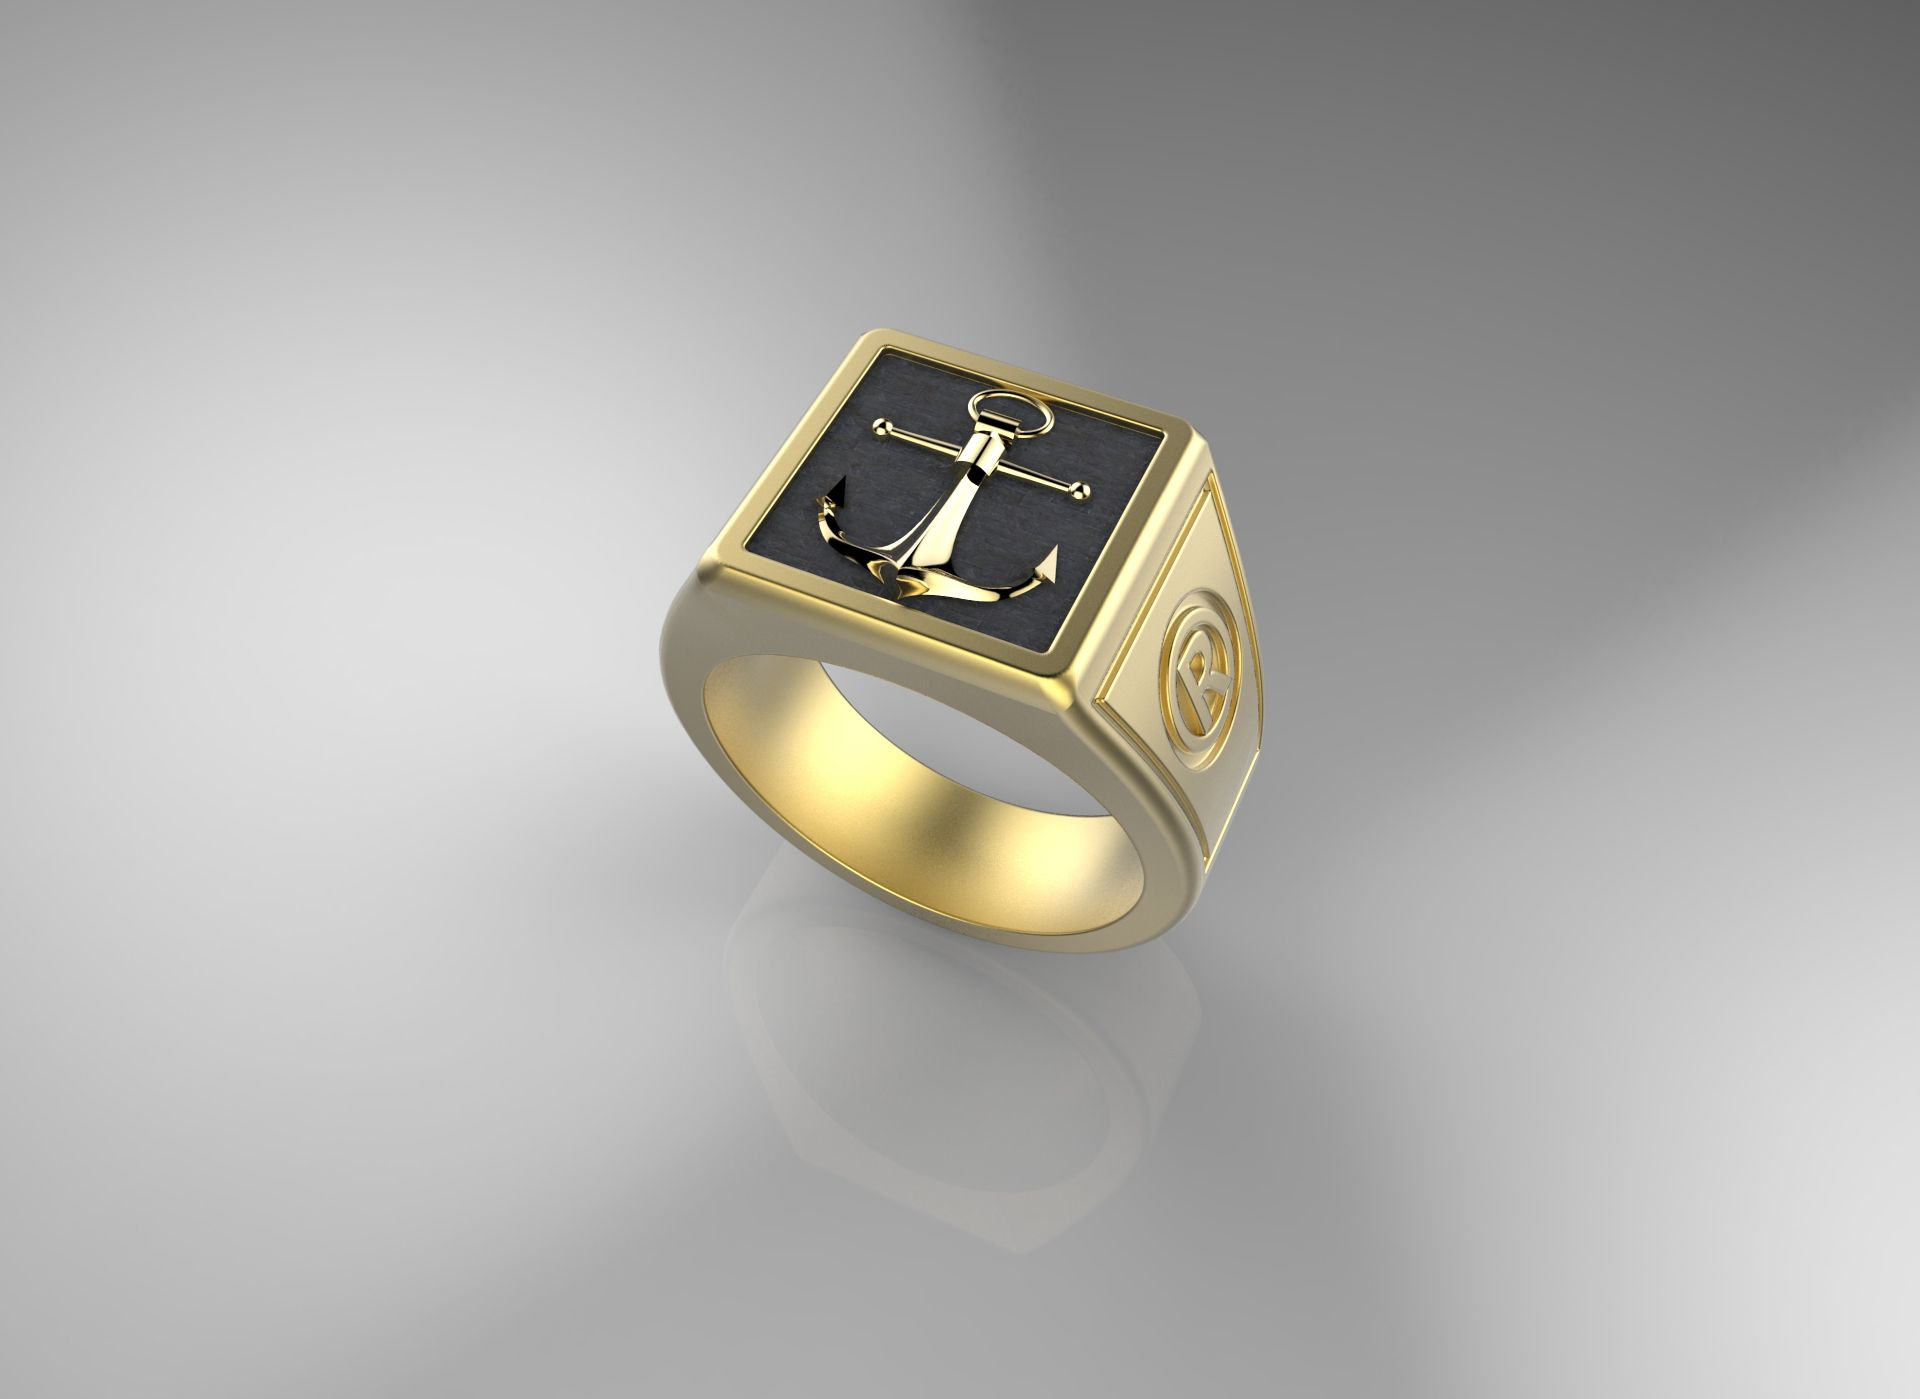 Square ring men ring russell jewelry pinterest